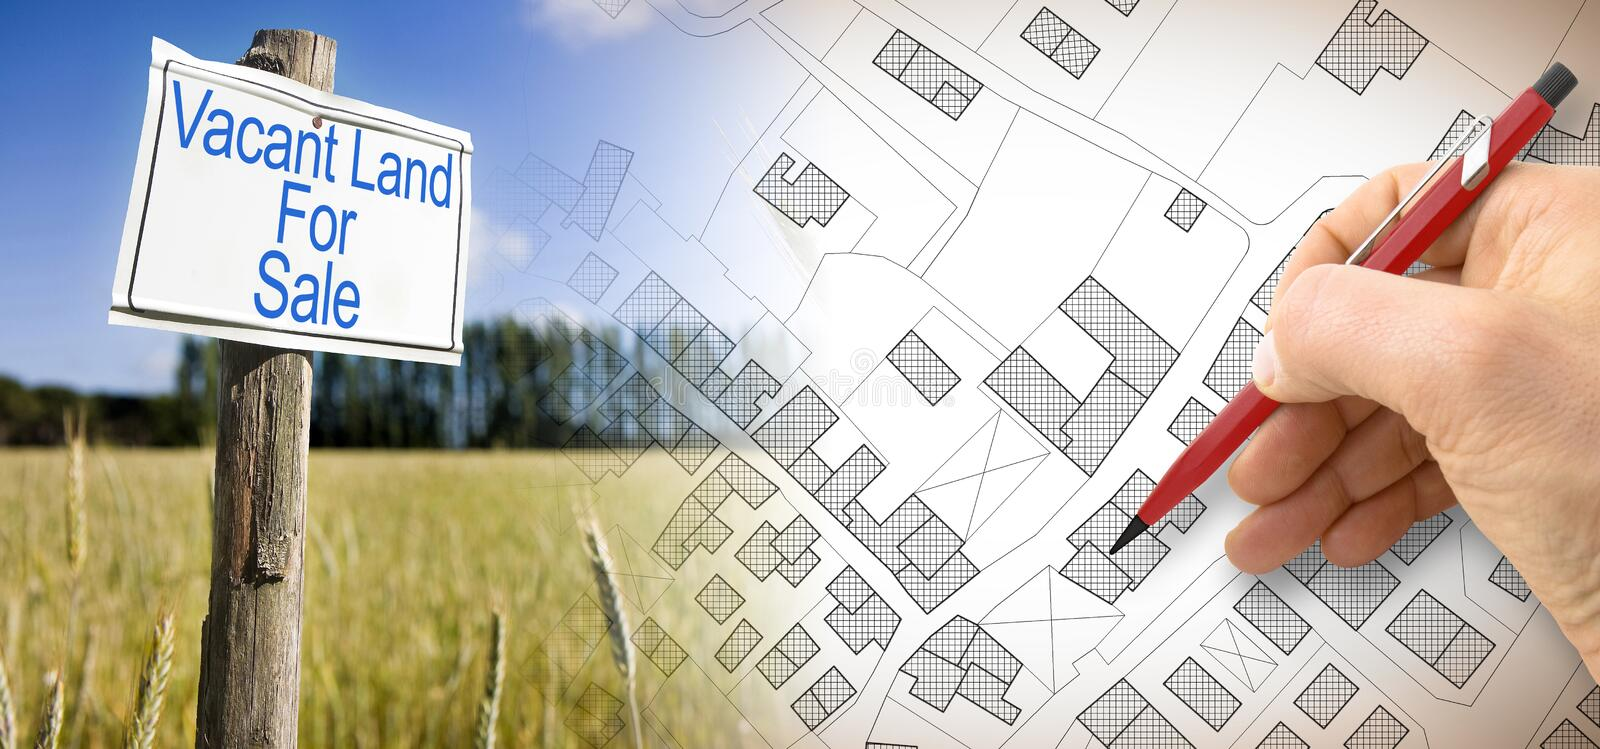 Advertising metal signboard in a rural scene with Vacant Land for Sale written on it and an imaginary cadastral map of territory royalty free stock images